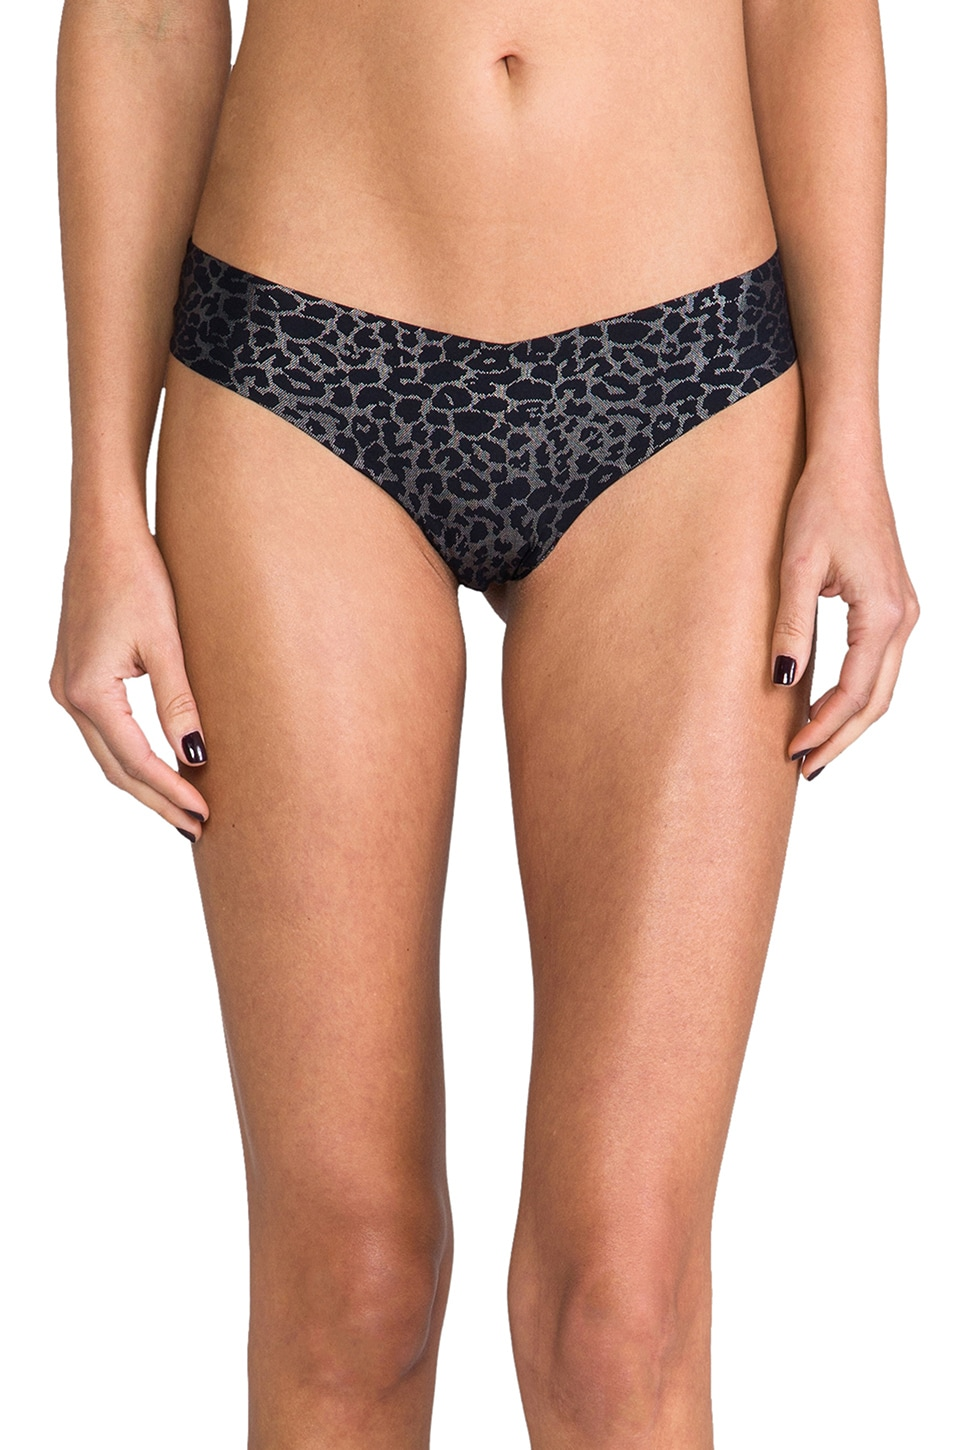 Commando Thong in Sparkle Kitty Black